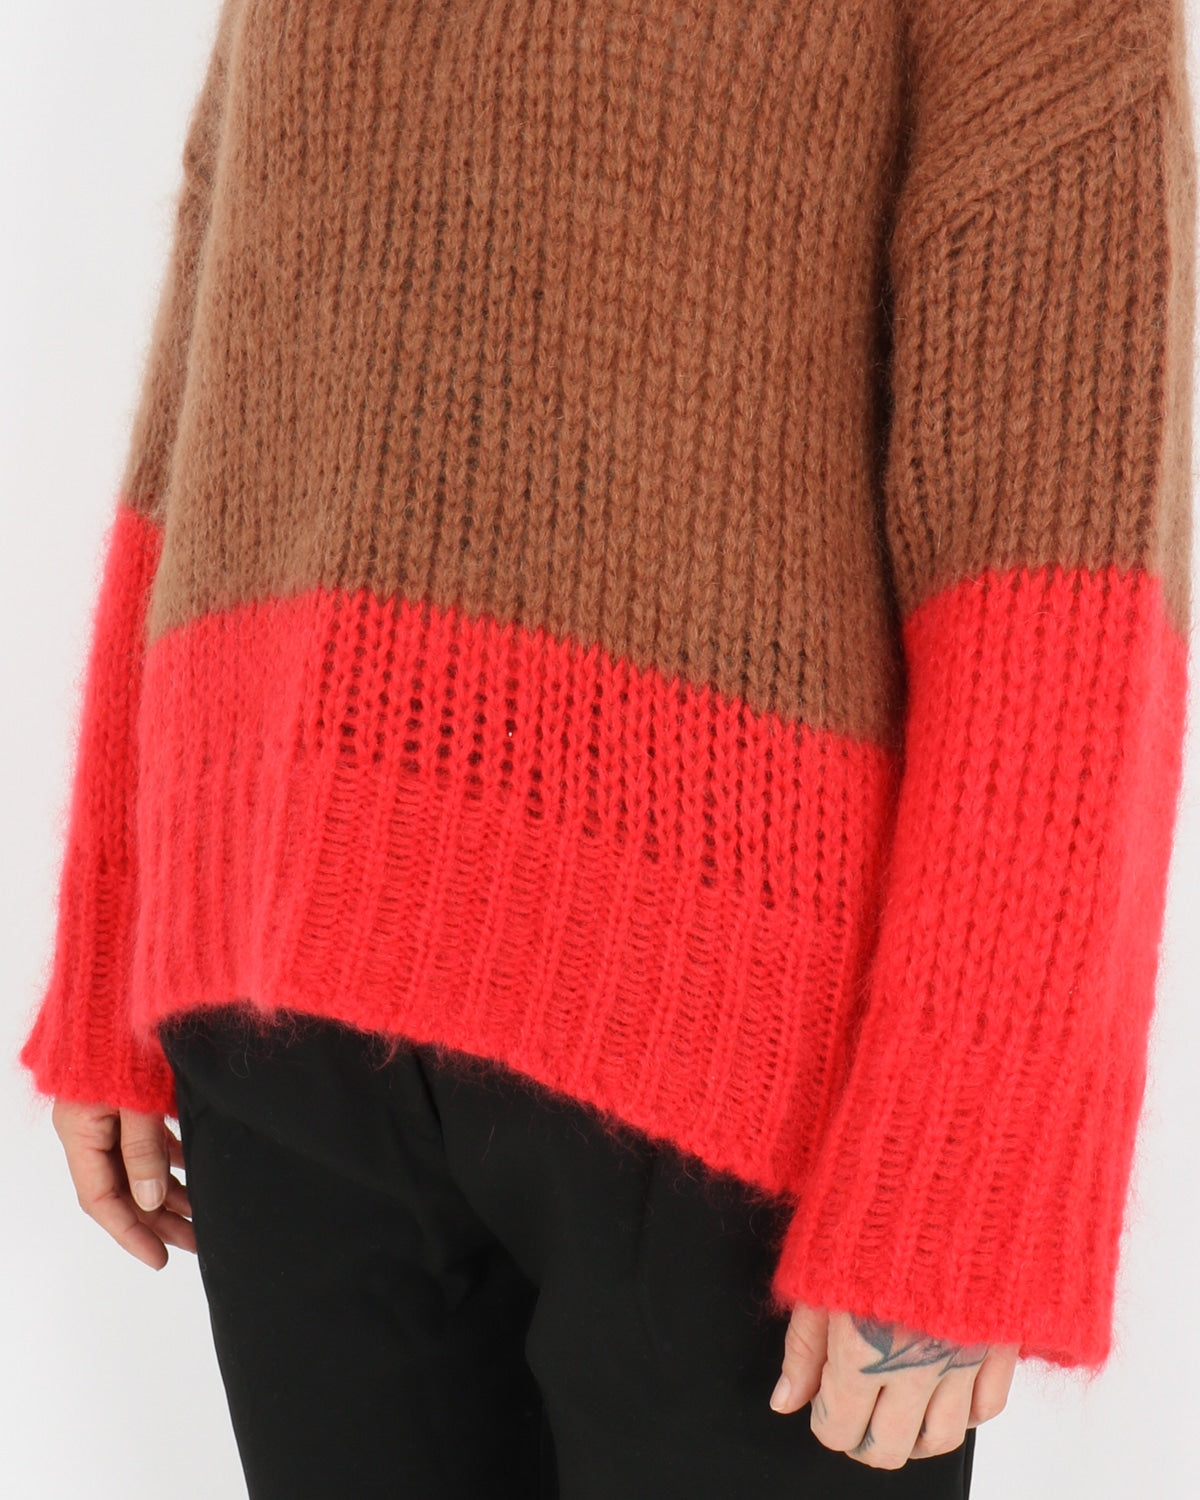 libertine libertine_pyros knit_camel bright red_2_4